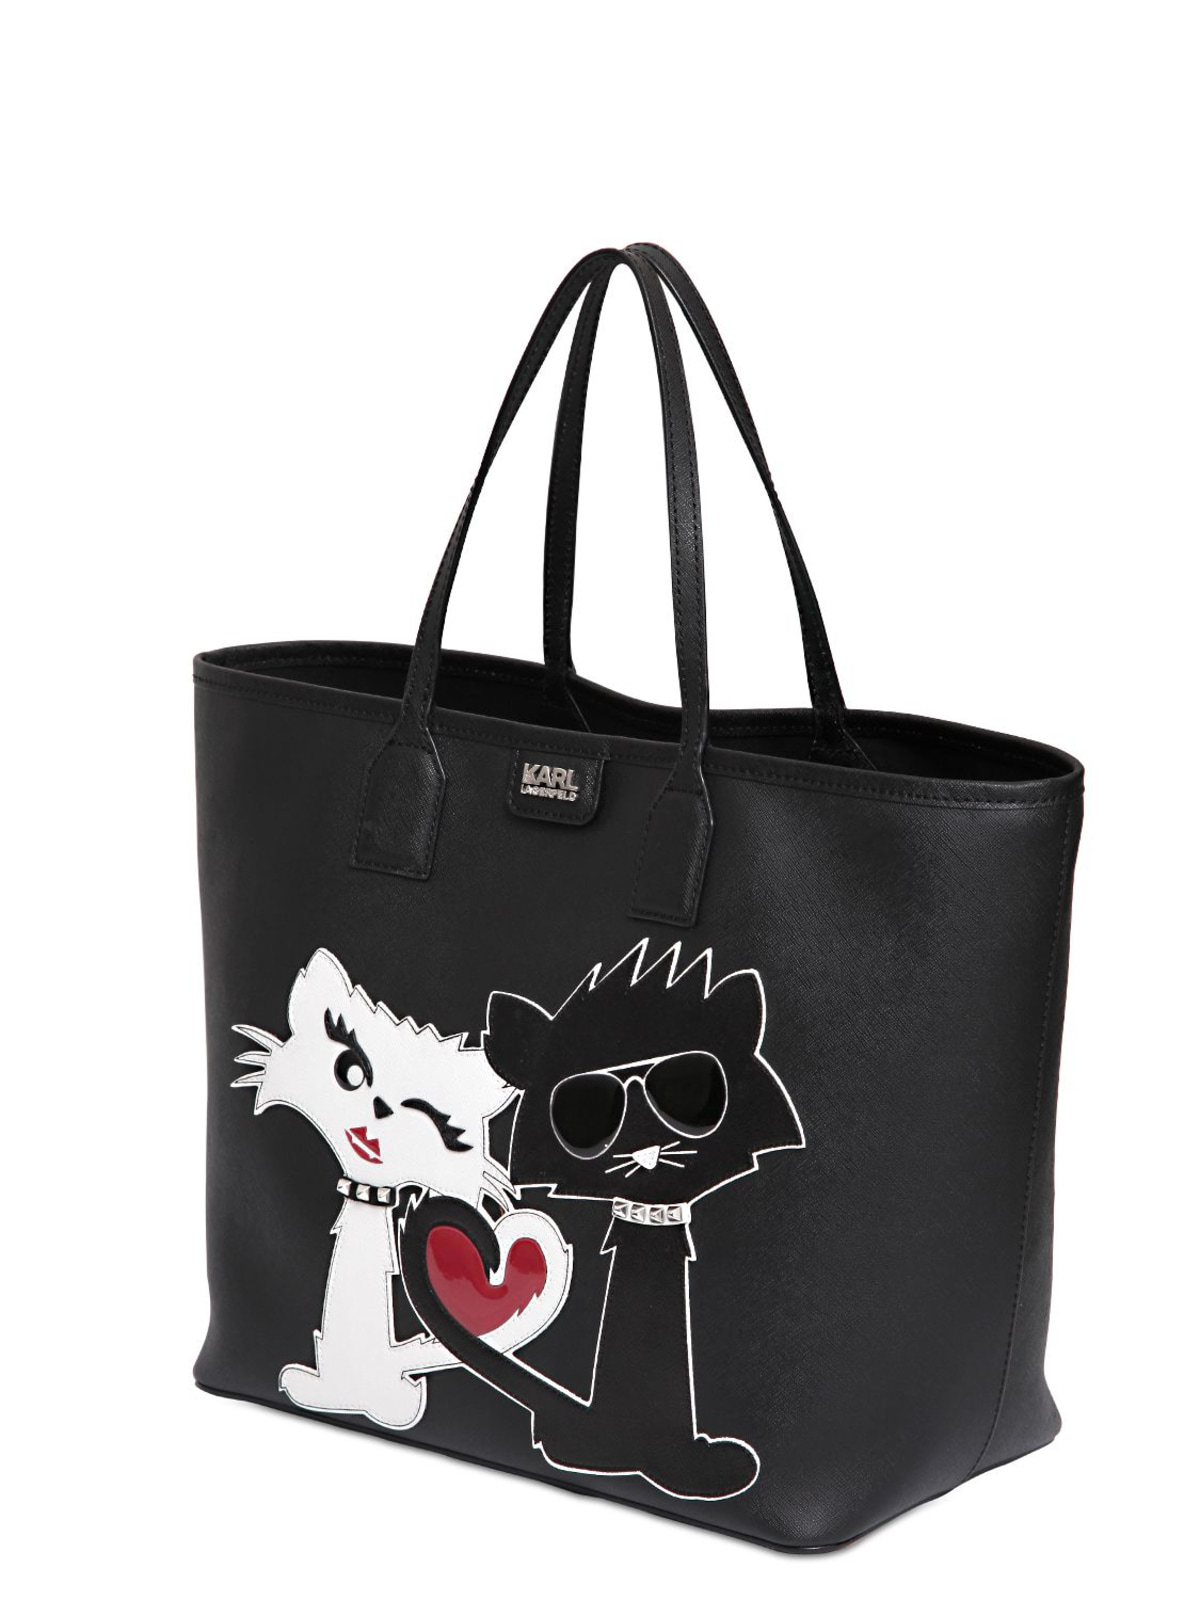 karl-lagerfeld-black-k-choupette-love-faux-leather-tote-bag-product-0-512278874-normal